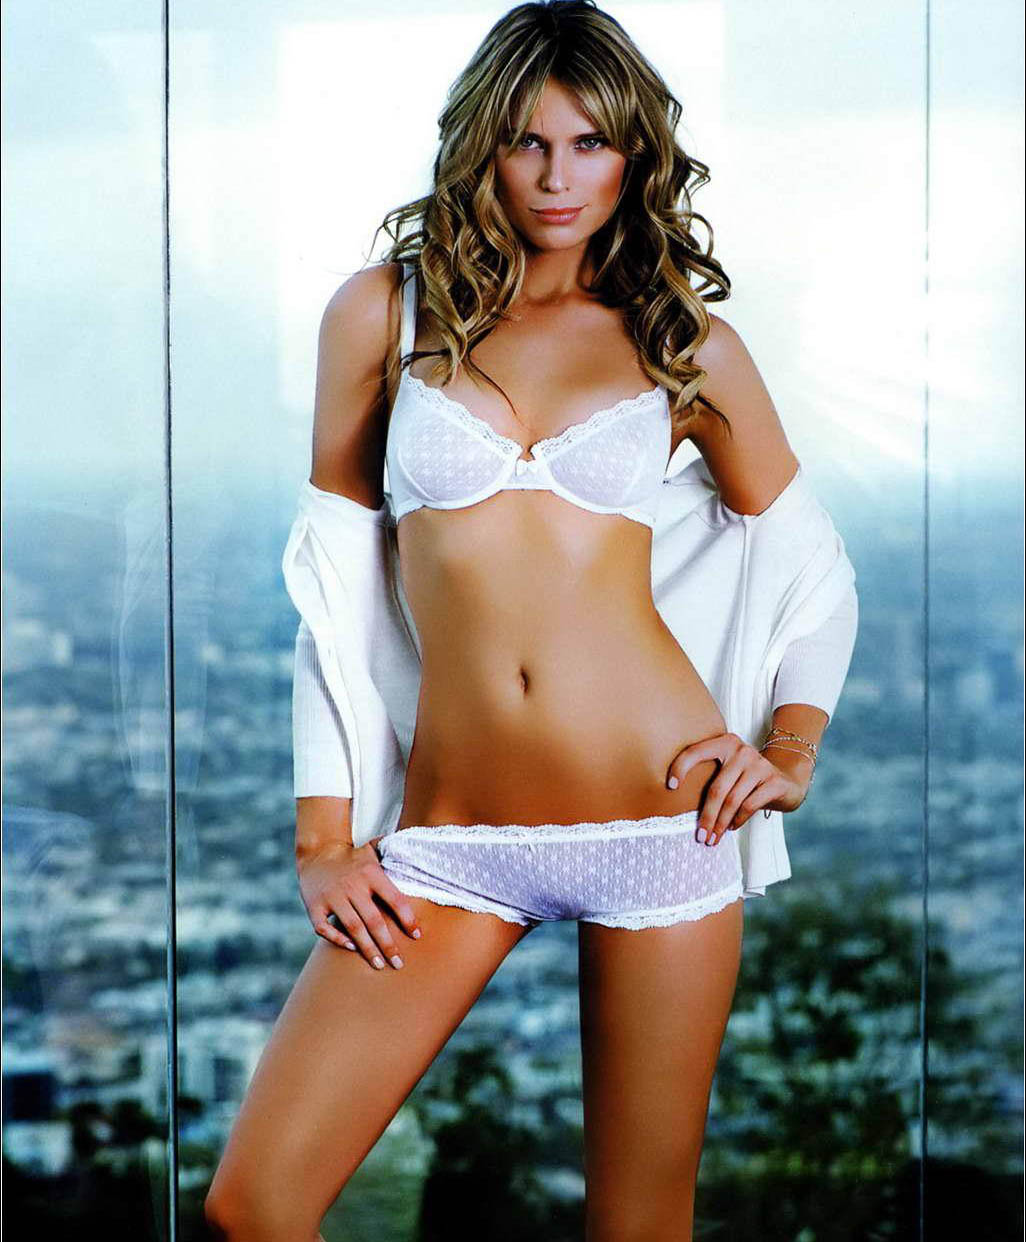 Sara foster naked pics opinion you